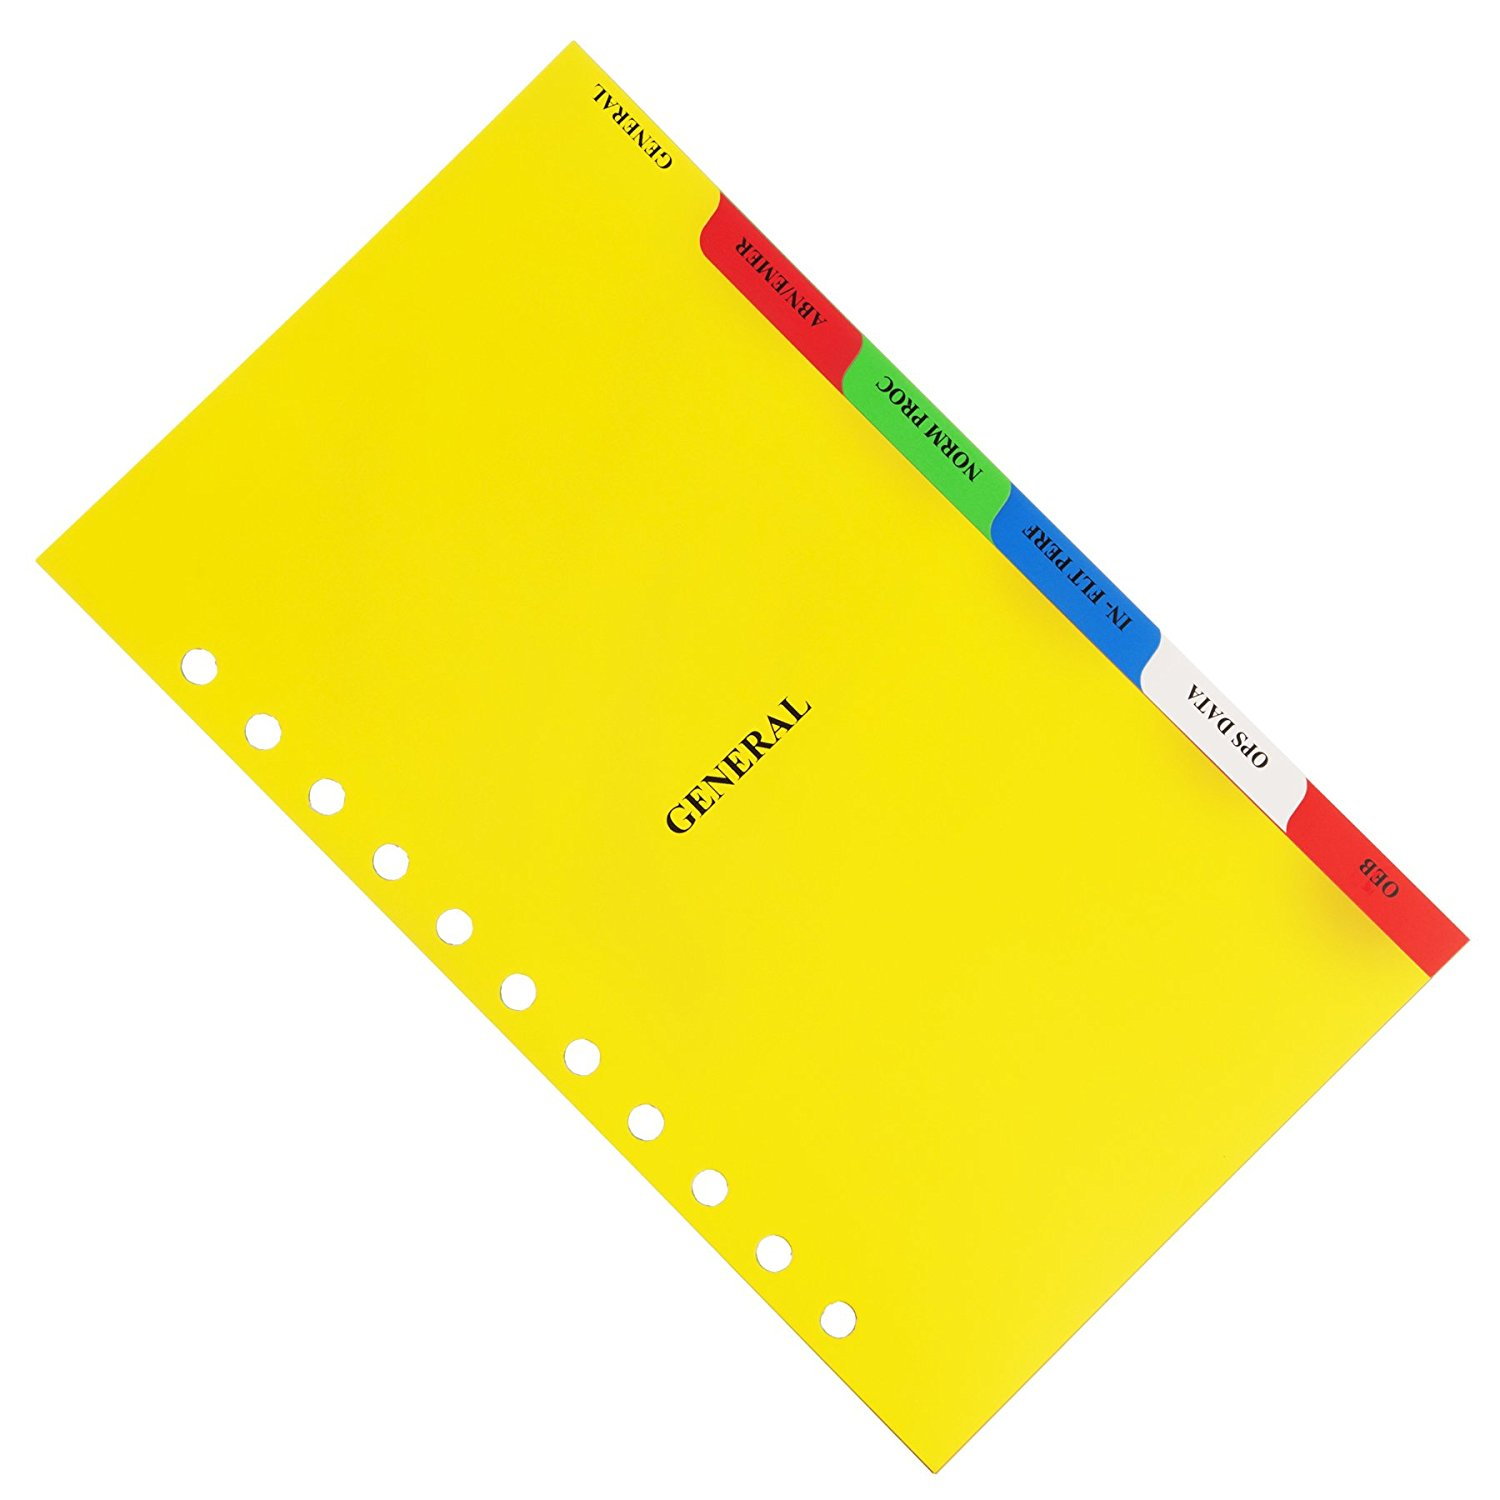 Aerobind 11 Hole Airline Compatible QRH Divider Tabs - 6 Tear-Resistant Synthetic Paper Index Tabs